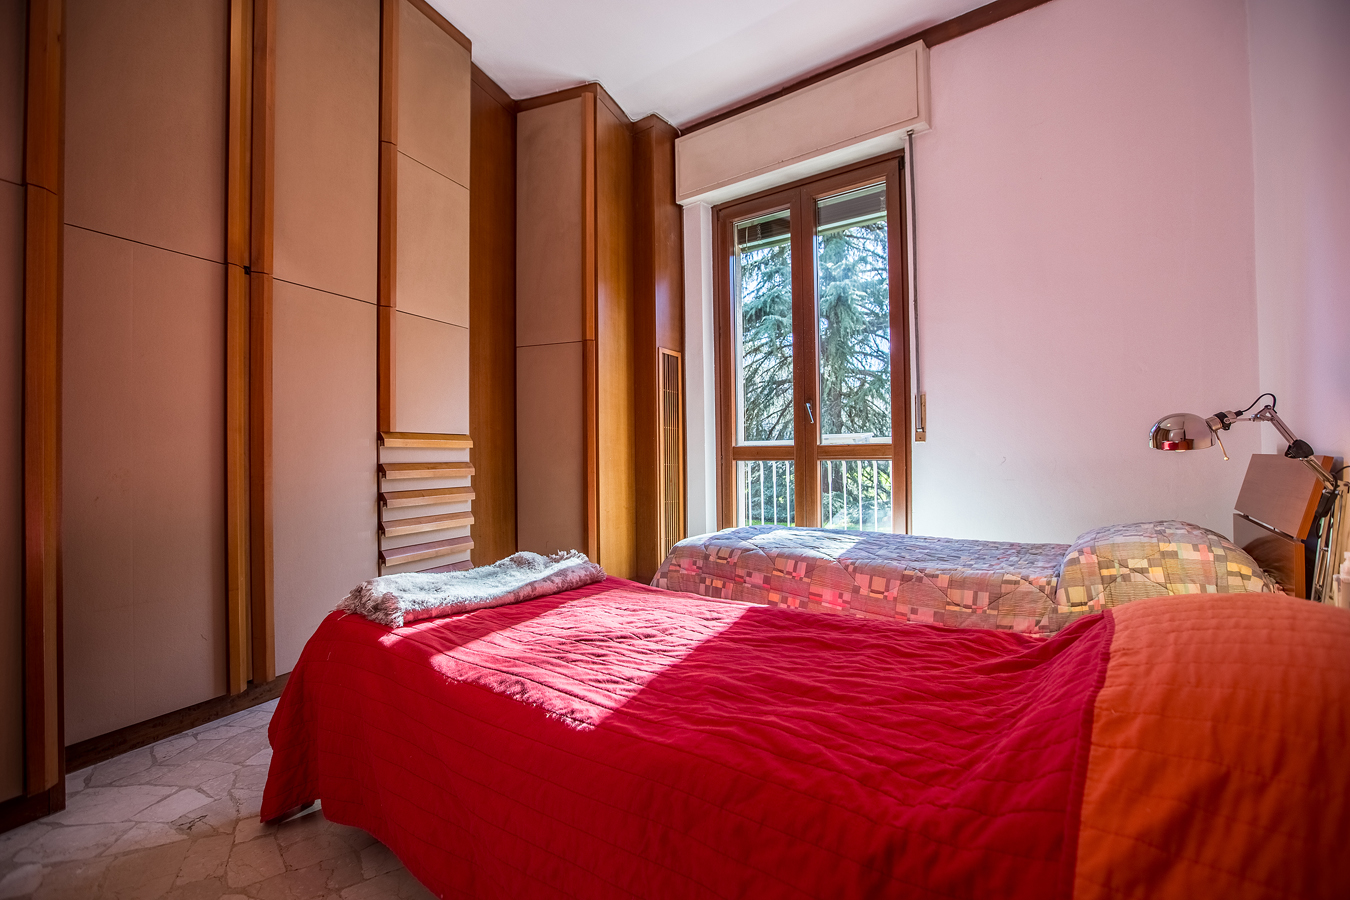 Student Accomodation for rent in double room in Via Villapizzone, 43, in Milano, Italy